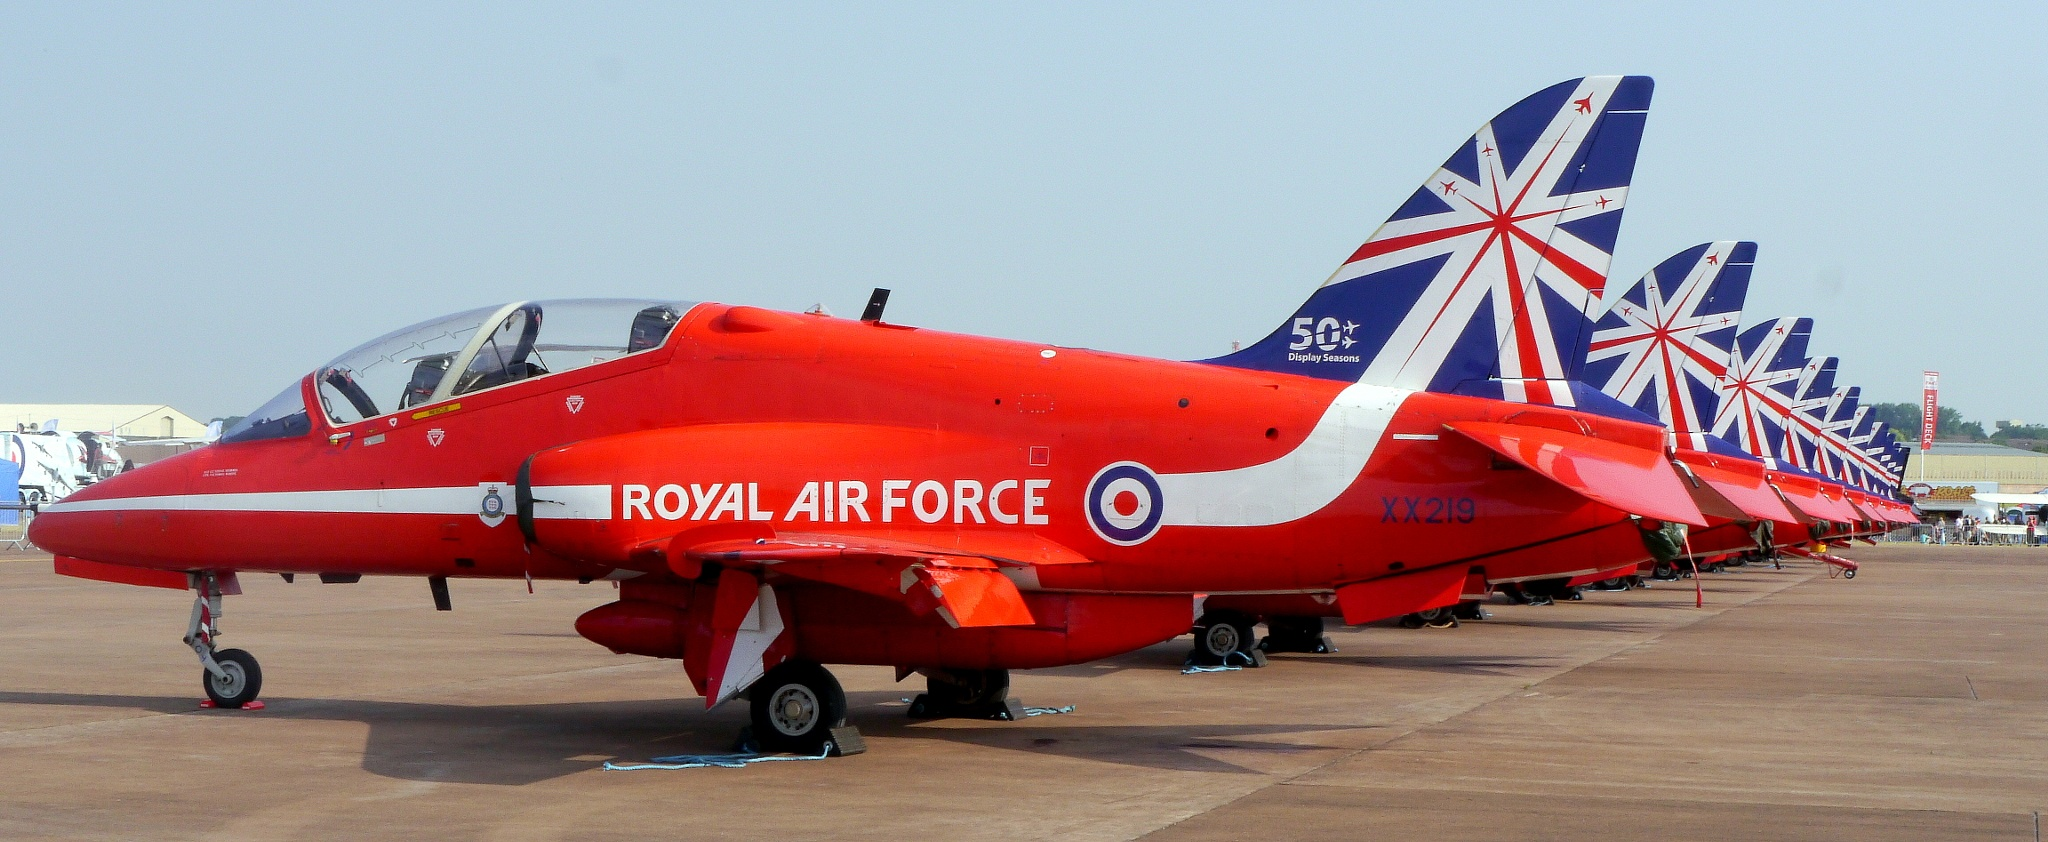 The Red Arrows at the Fairford Airshow by Seymour White